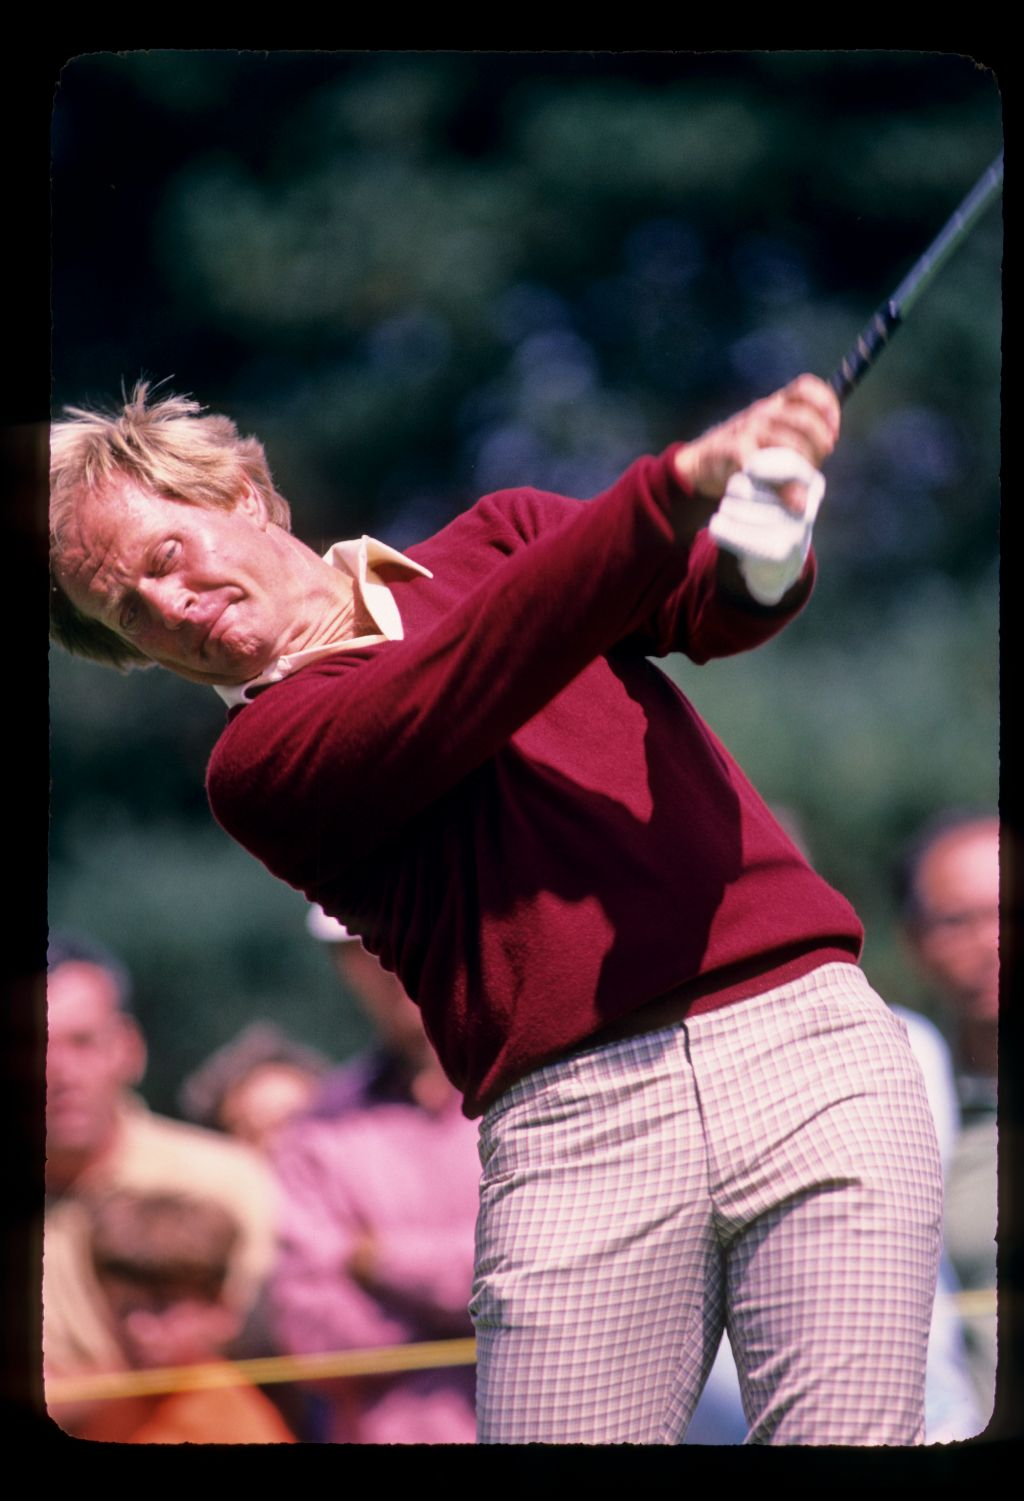 Jack Nicklaus powering through a drive during the 1982 World Series of Golf